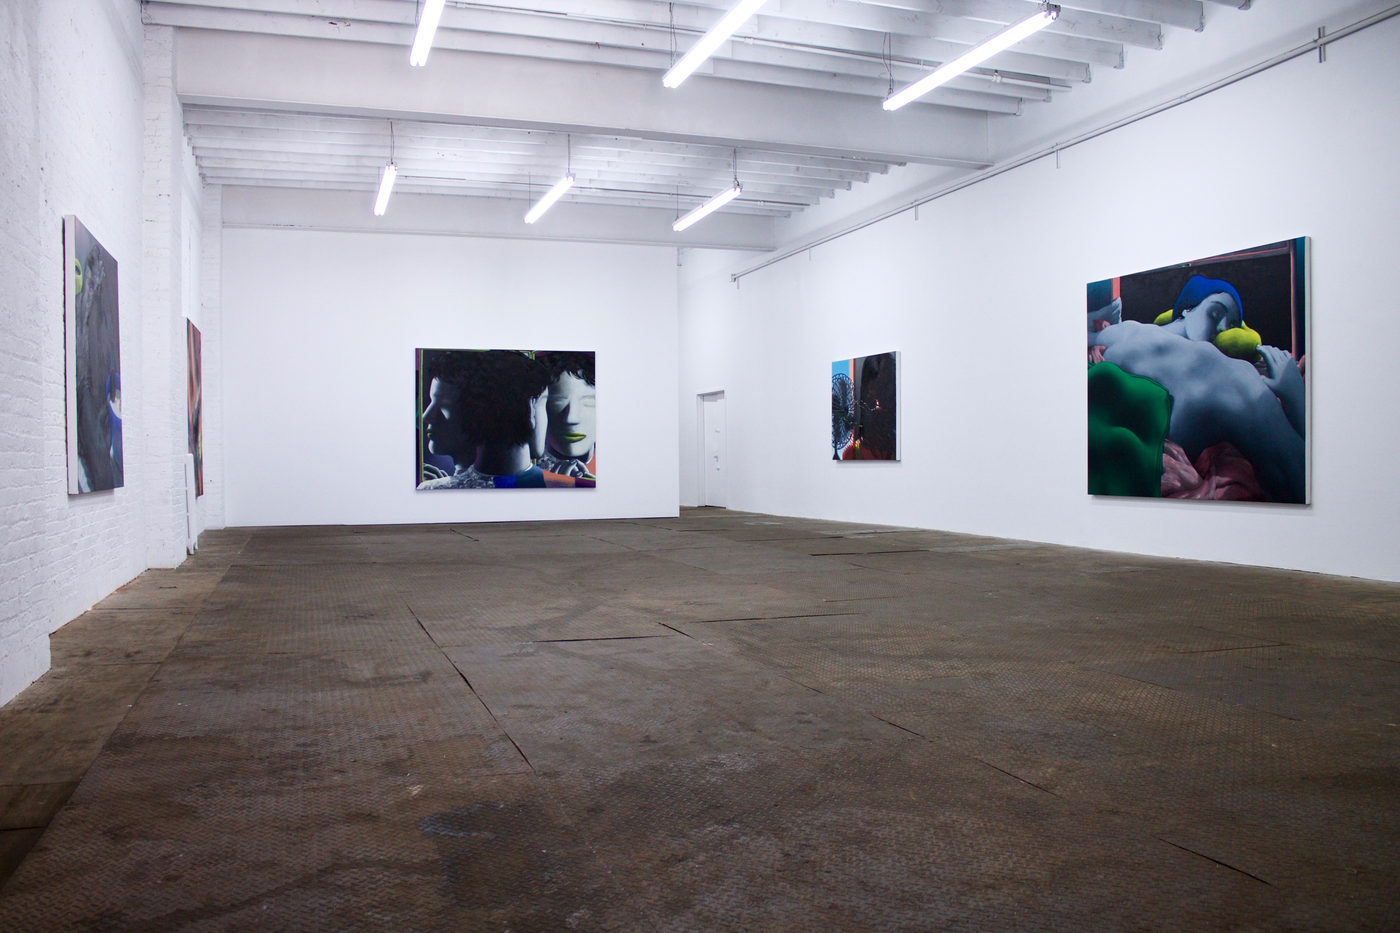 Jordan Kasey Free Time Install Shots - 1 of 15